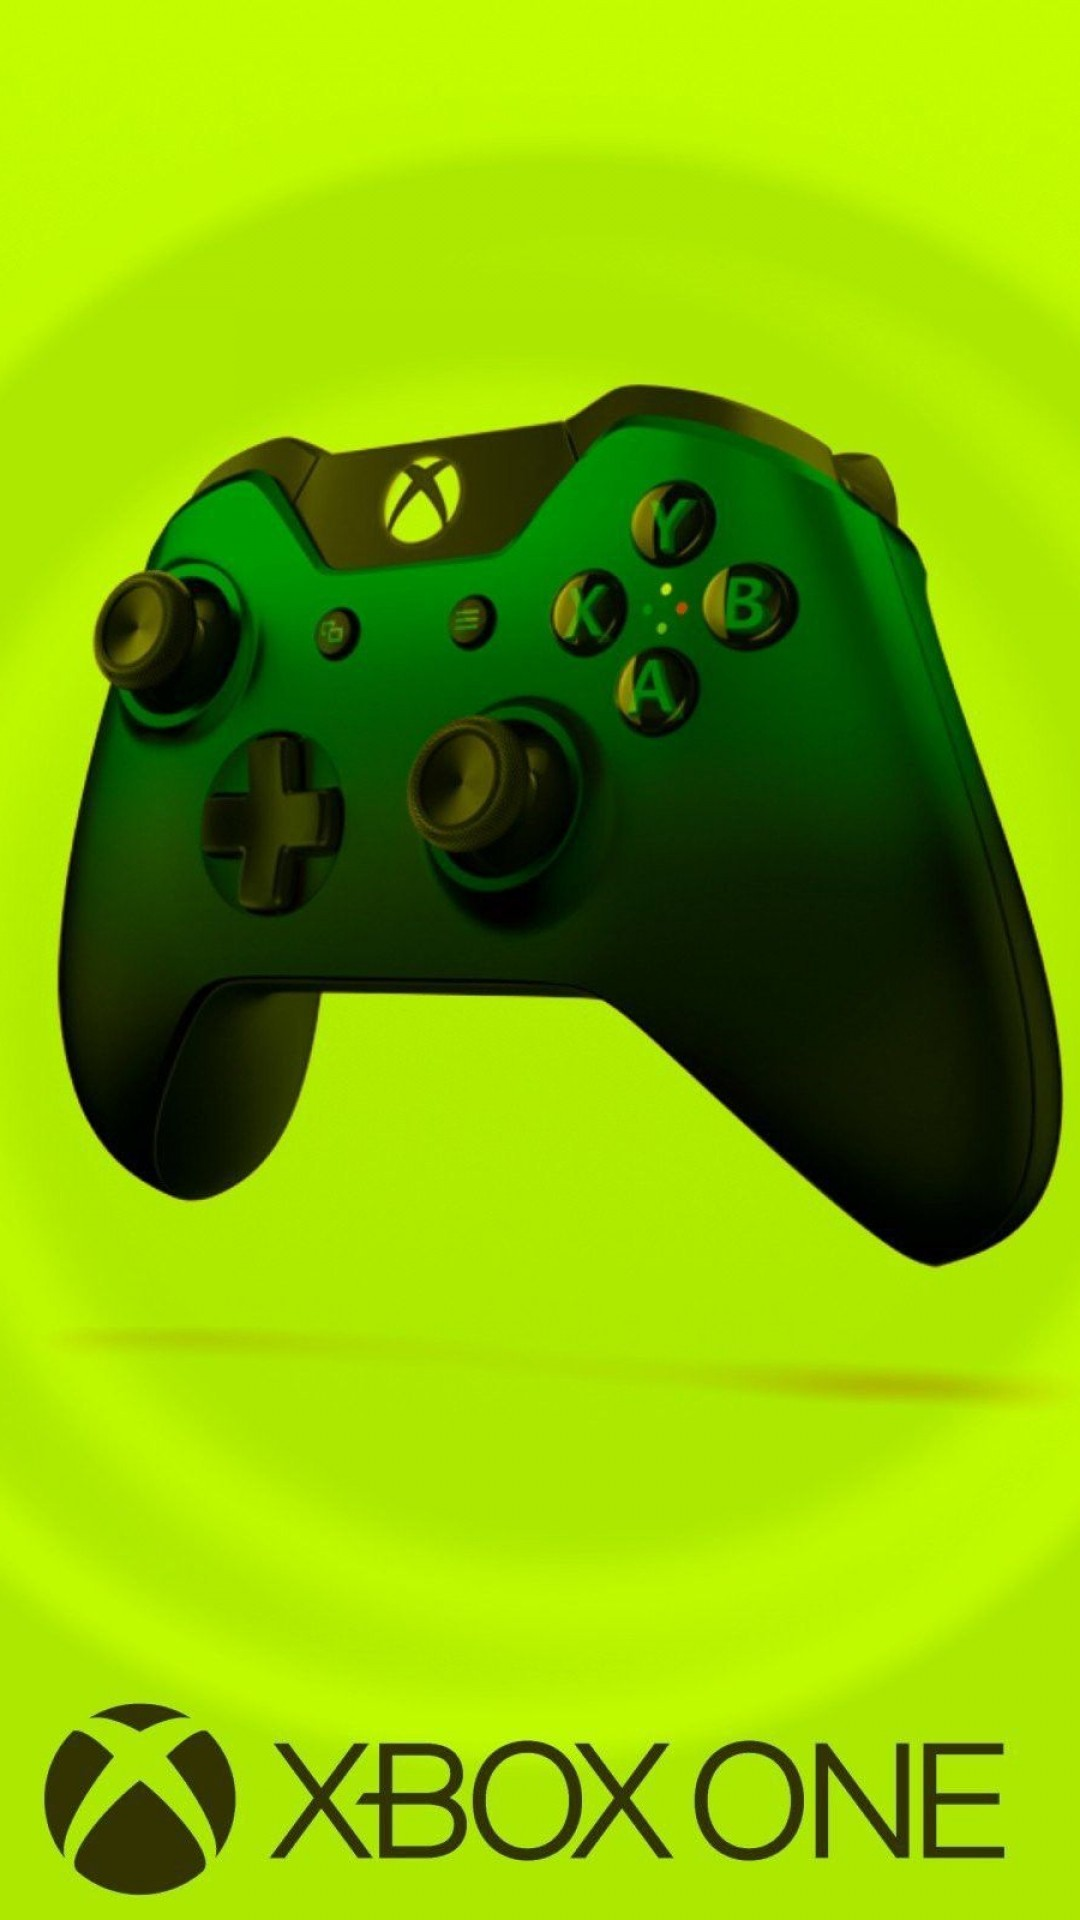 Xbox One Iphone Wallpaper 82 Images